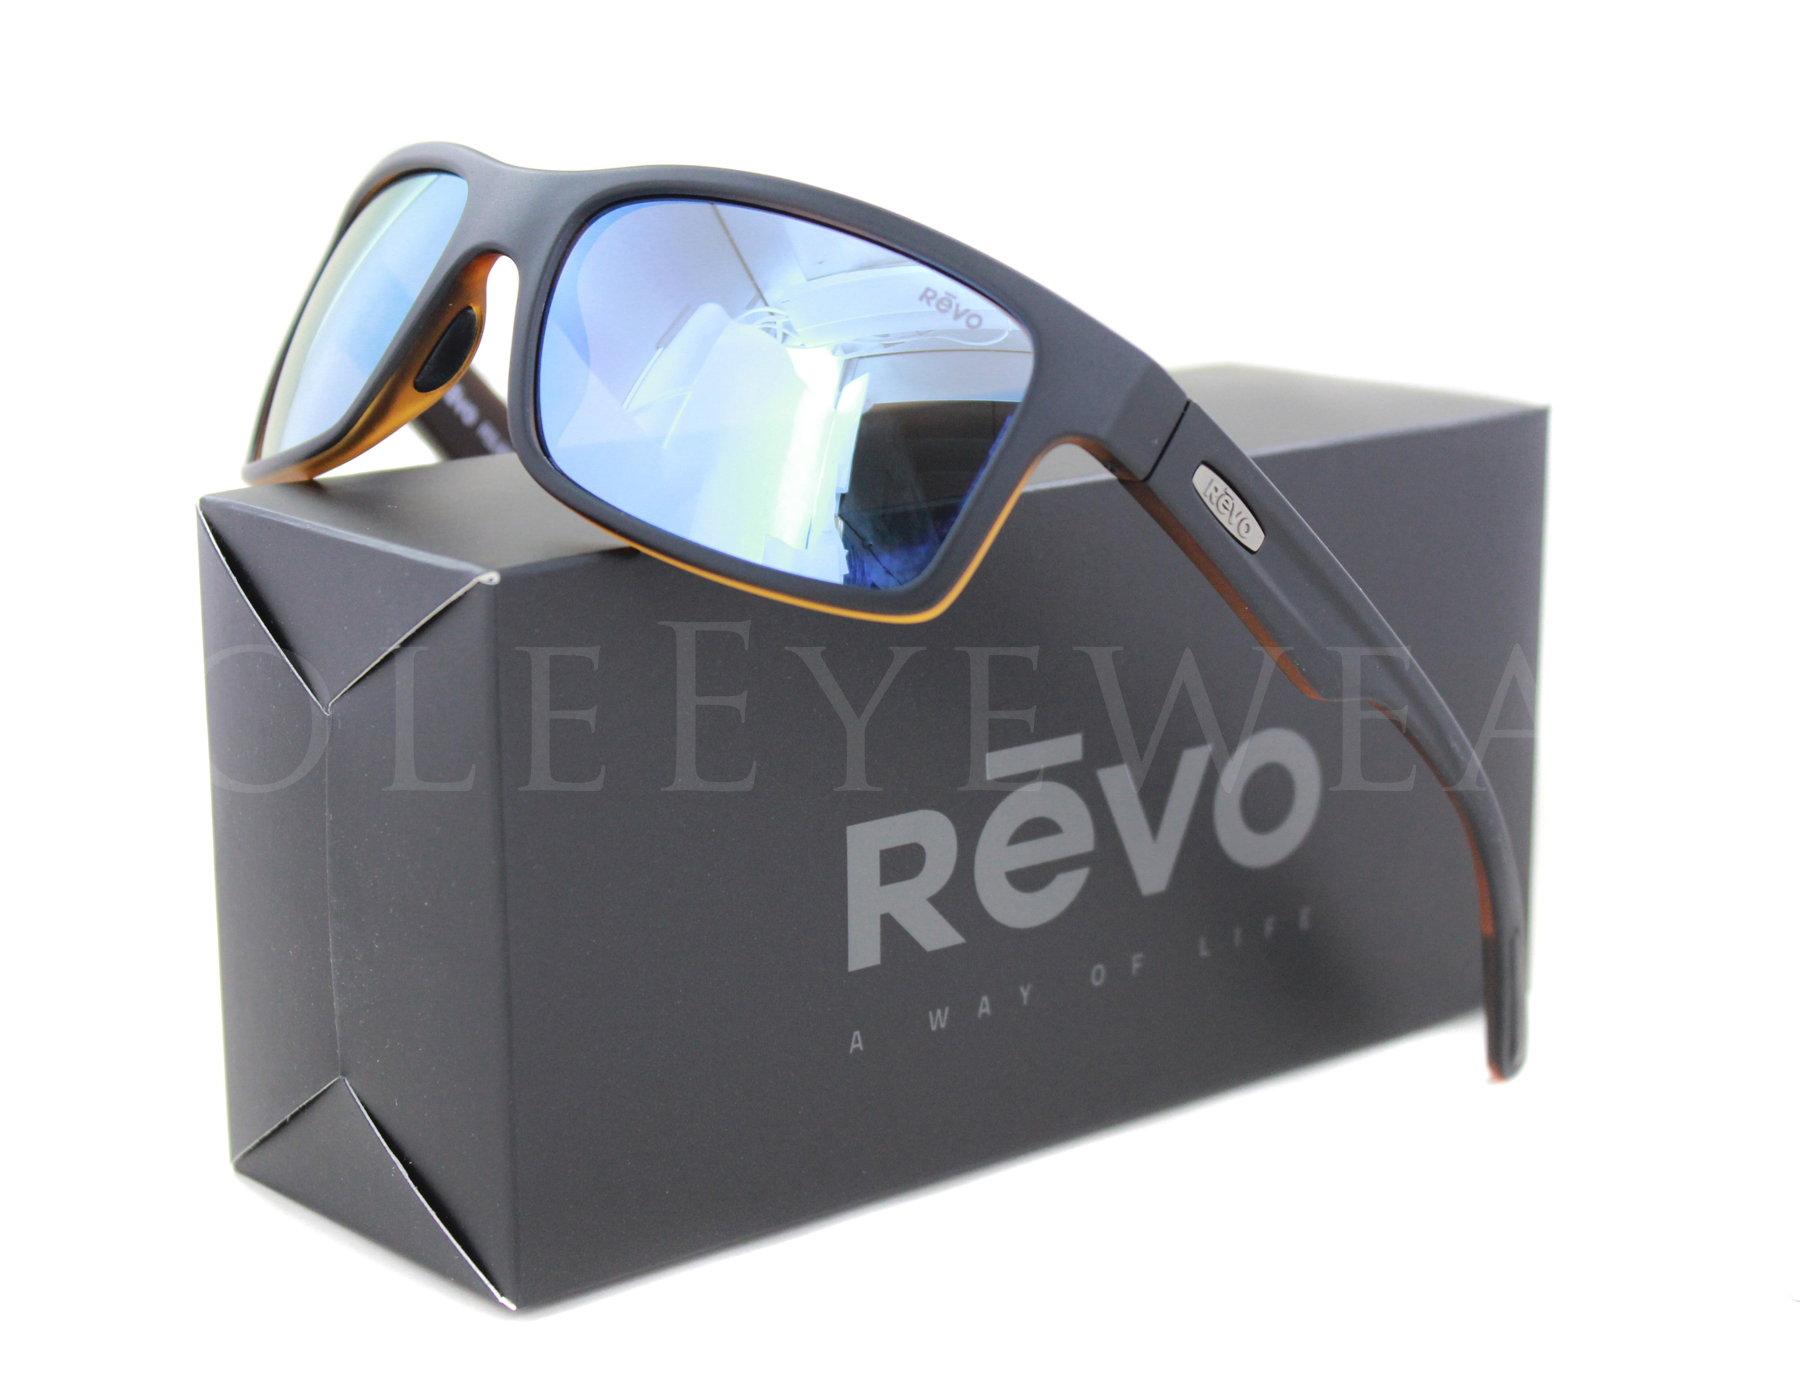 f307bc4f7d Details about NEW Revo 1027 01 BL Crawler Matte Black Tortoise Blue  Sunglasses